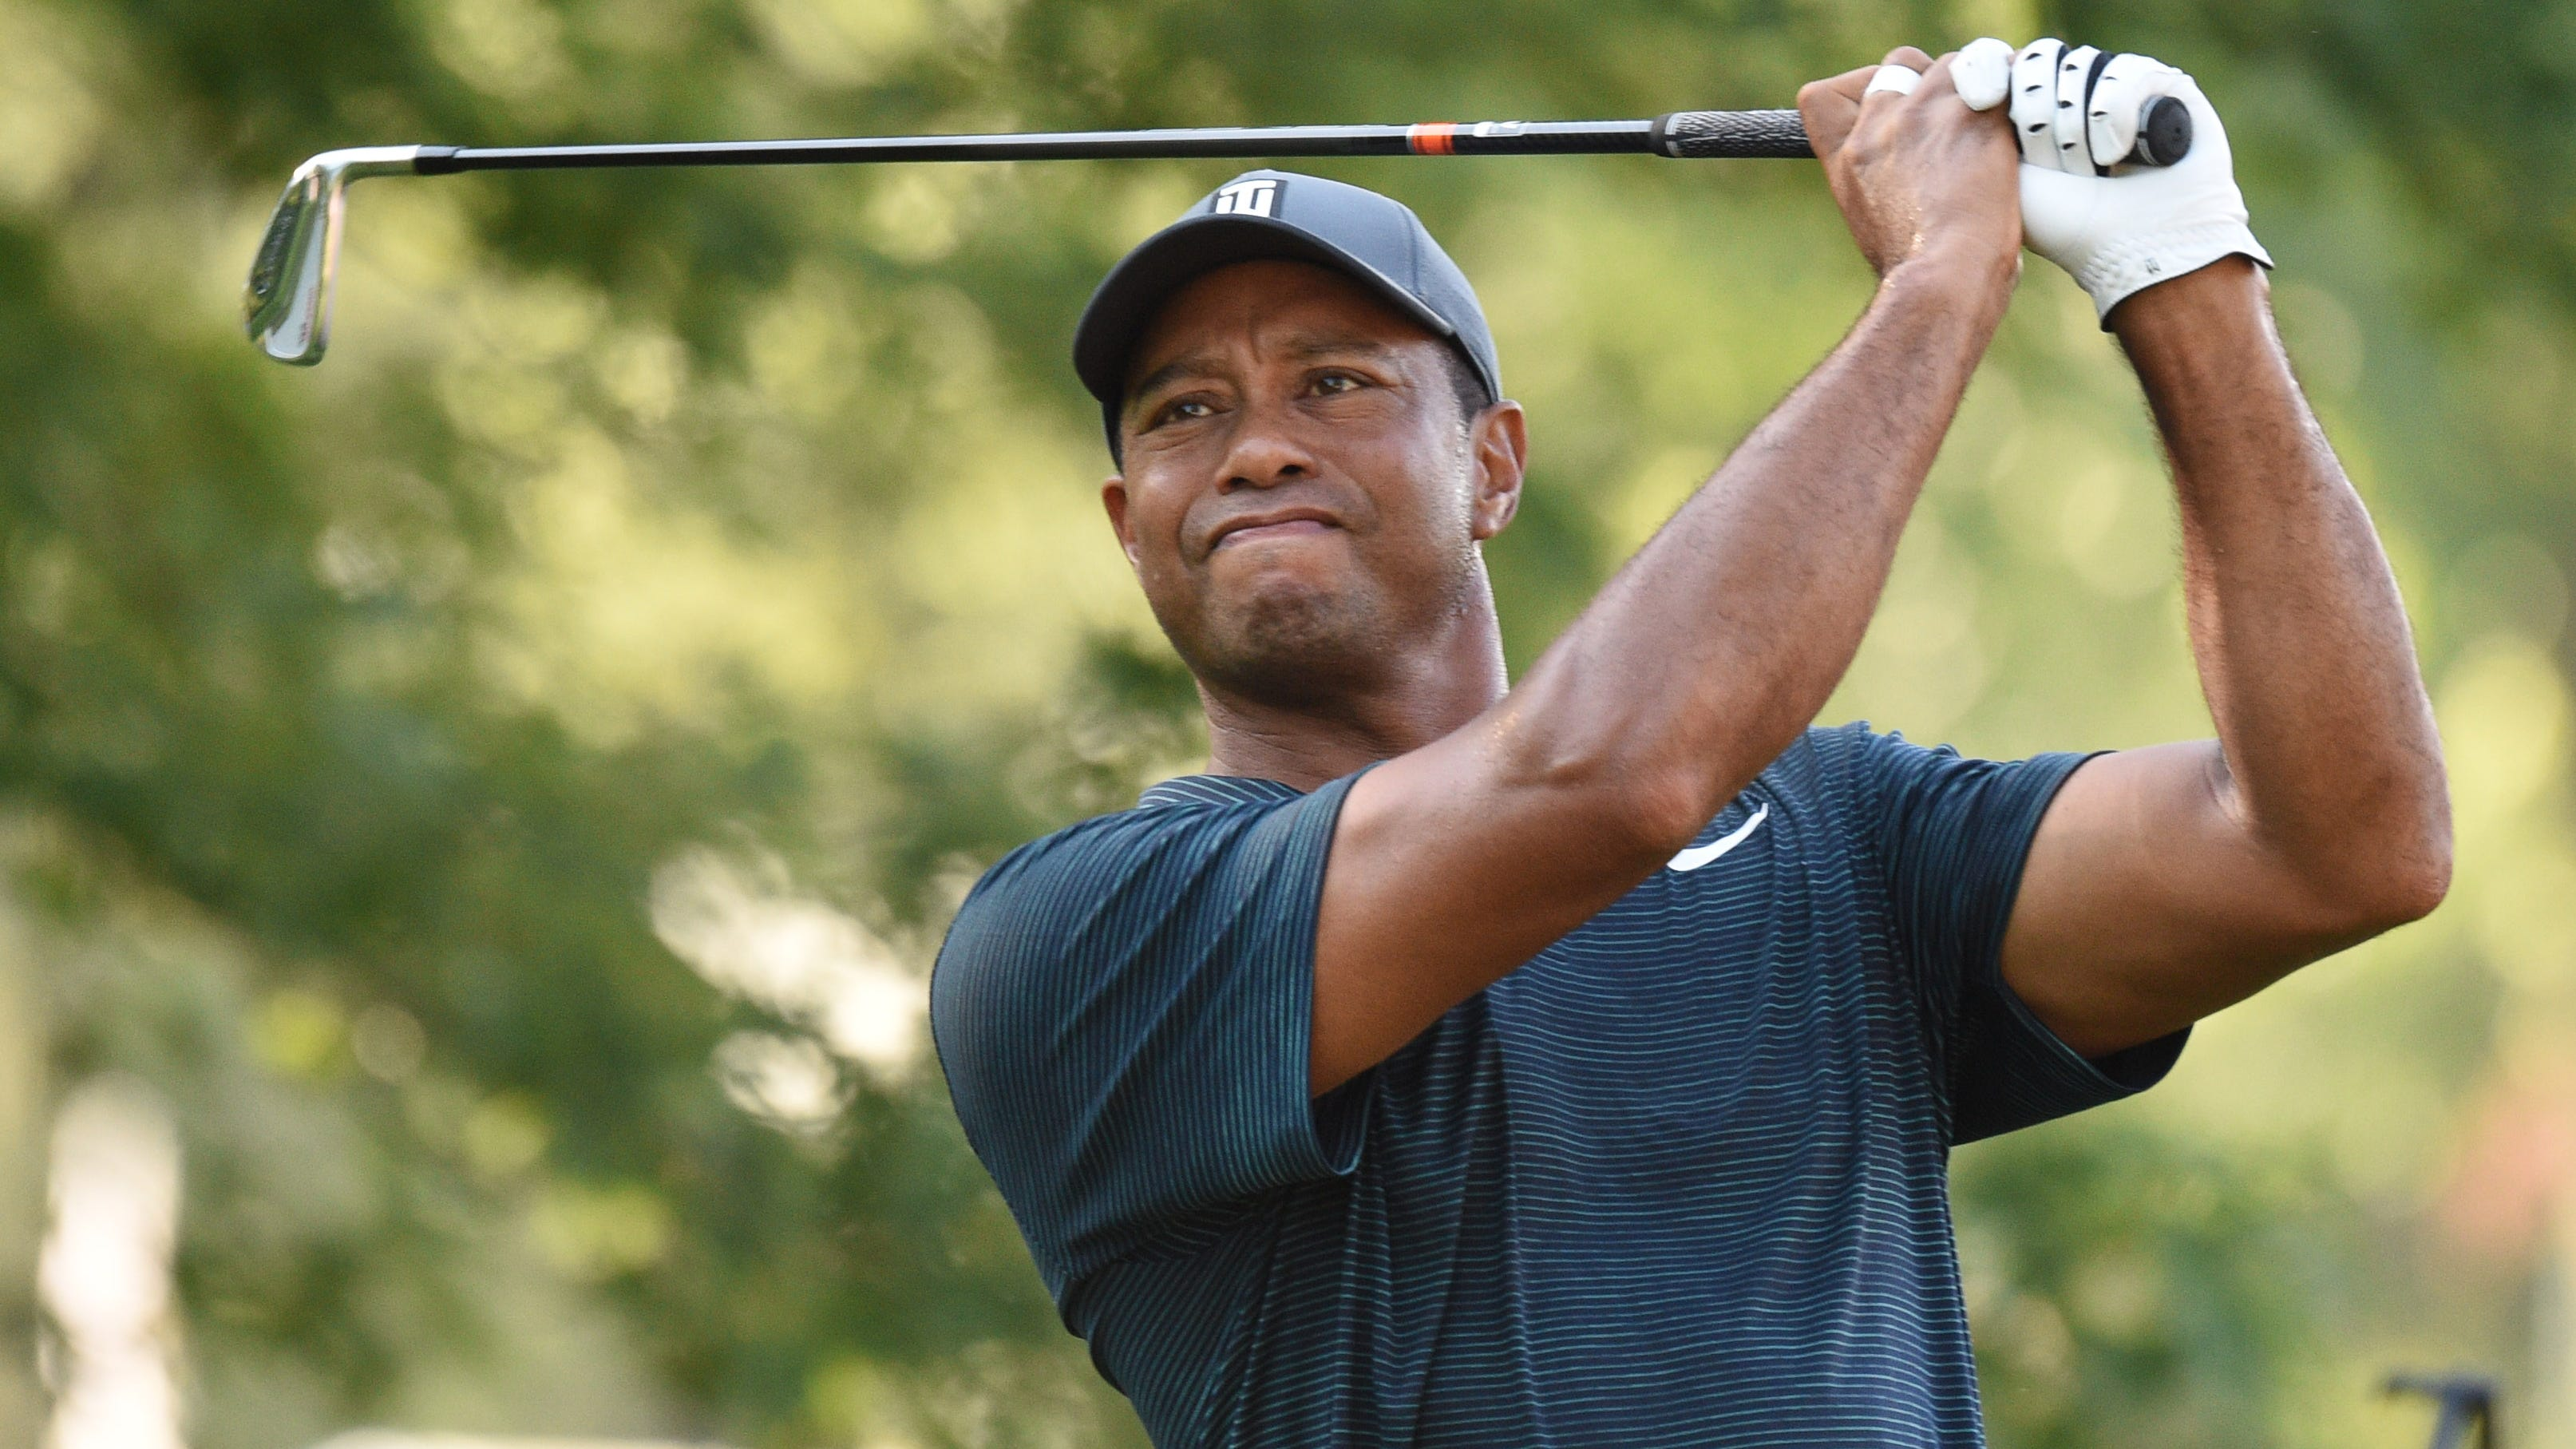 PGA: PGA Championship: Follow Tiger Woods' Thursday Round, Shot